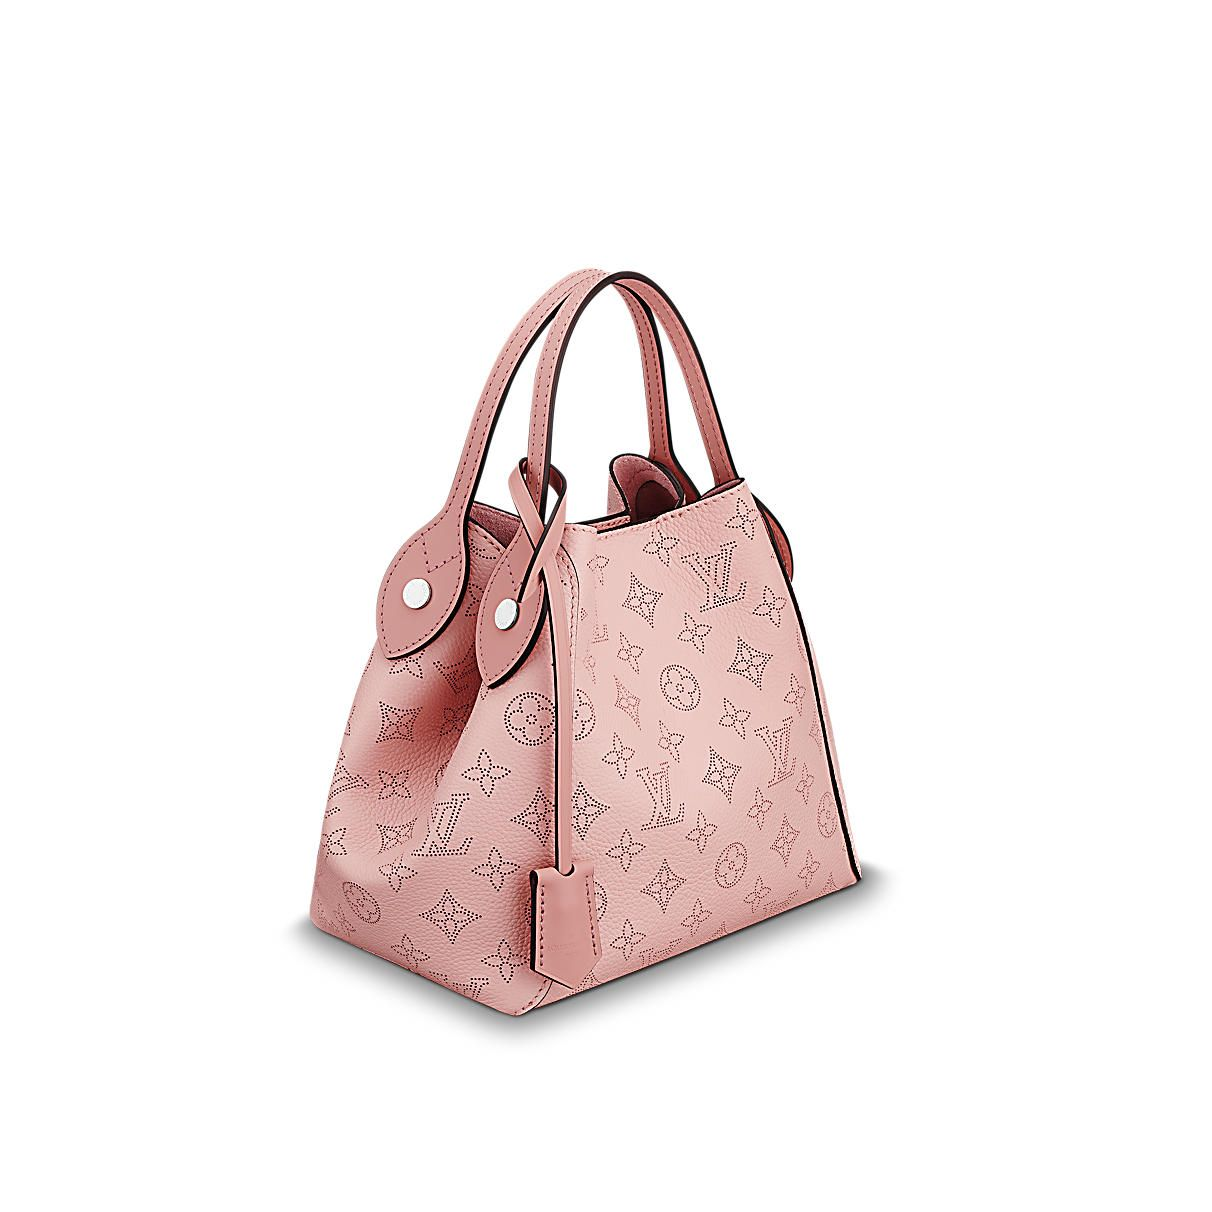 17cb5de90141 Hina PM Mahina Leather in Women s Handbags collections by Louis Vuitton